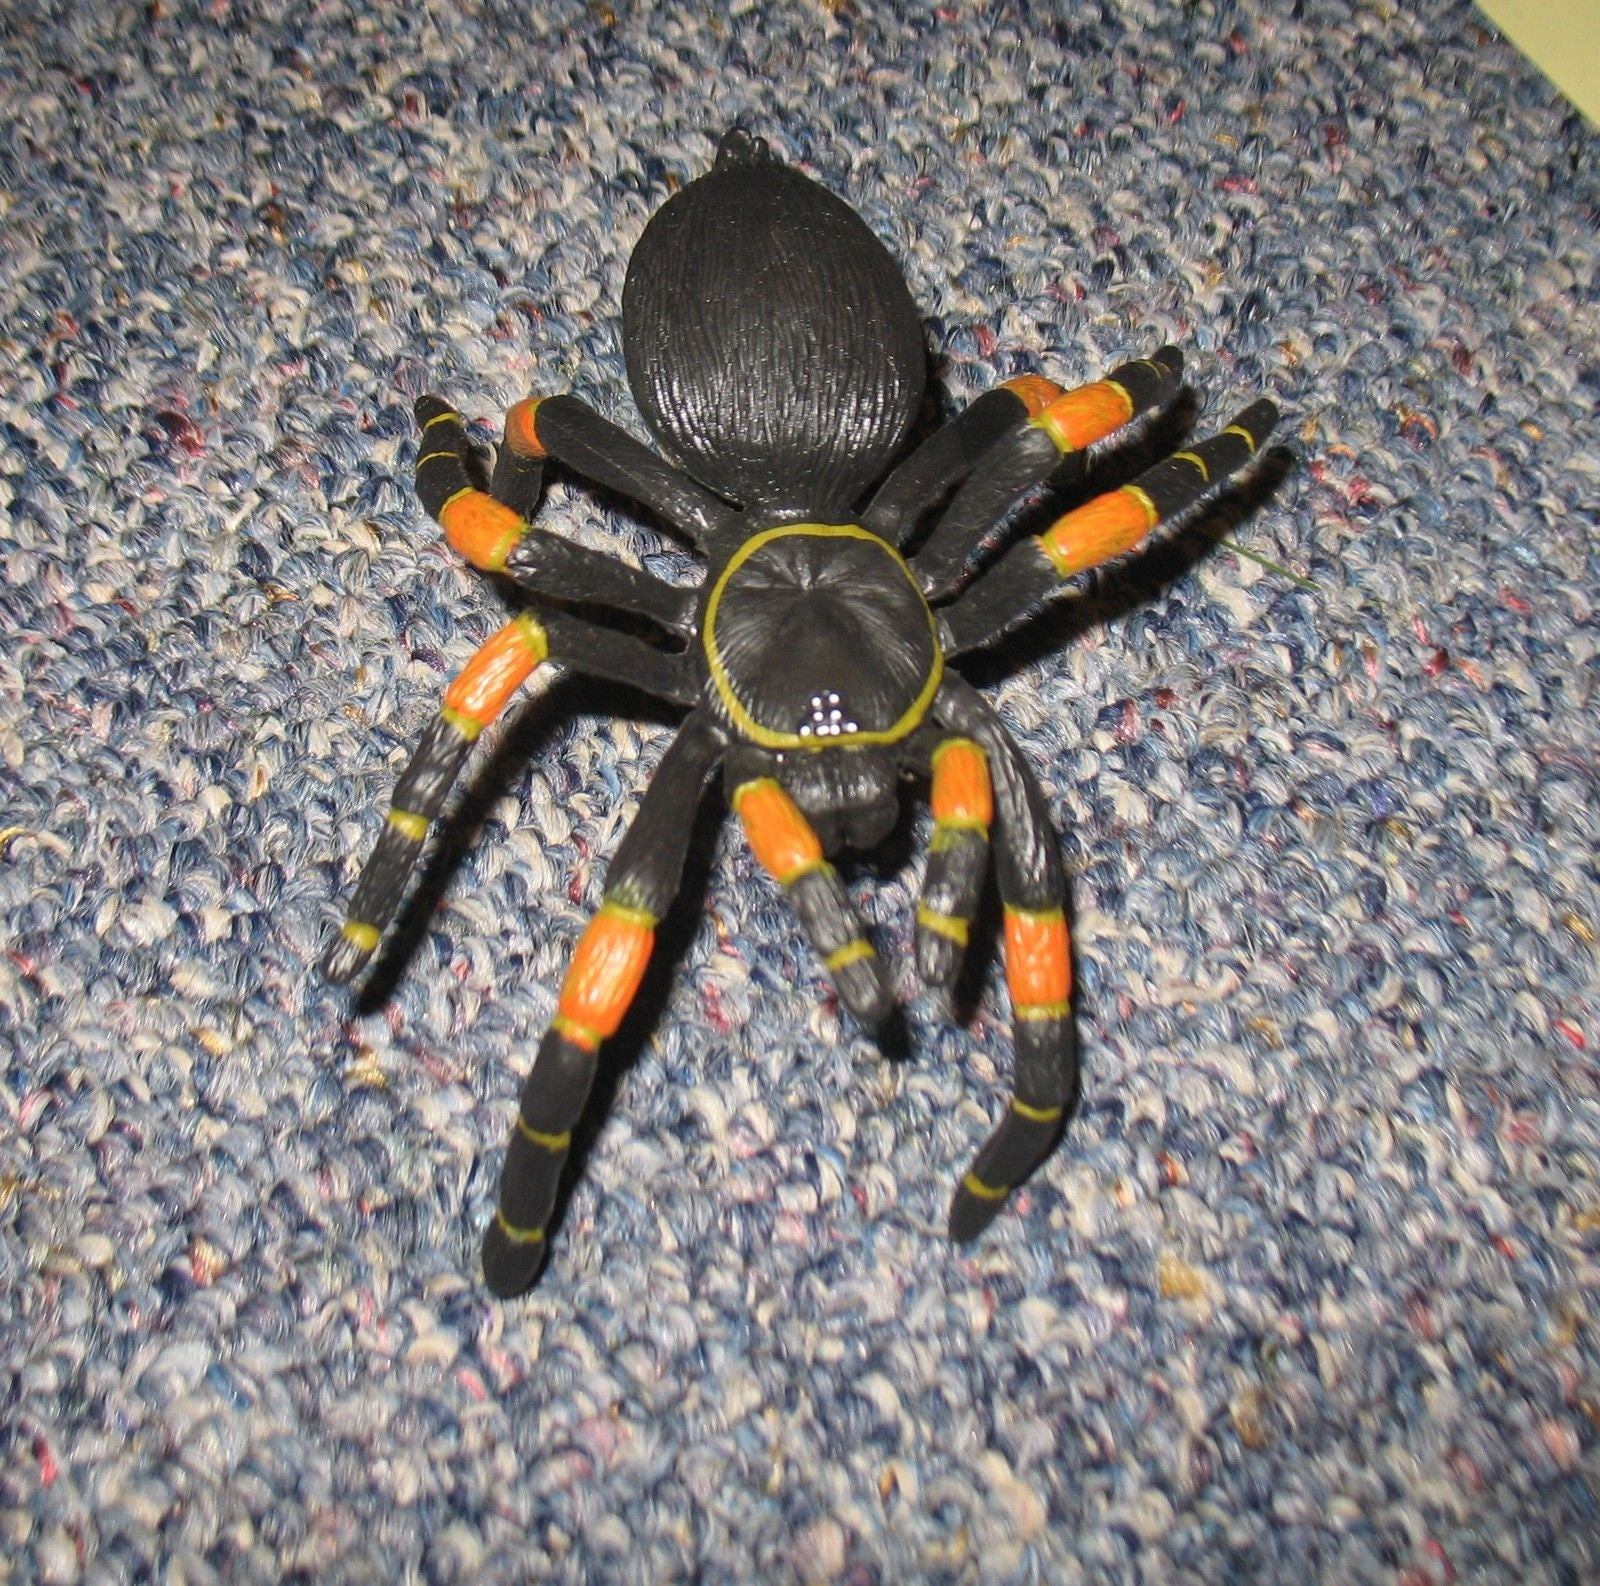 A242 GI JOE Hasbro 8 Legs of Danger Red Kneed Spider New.